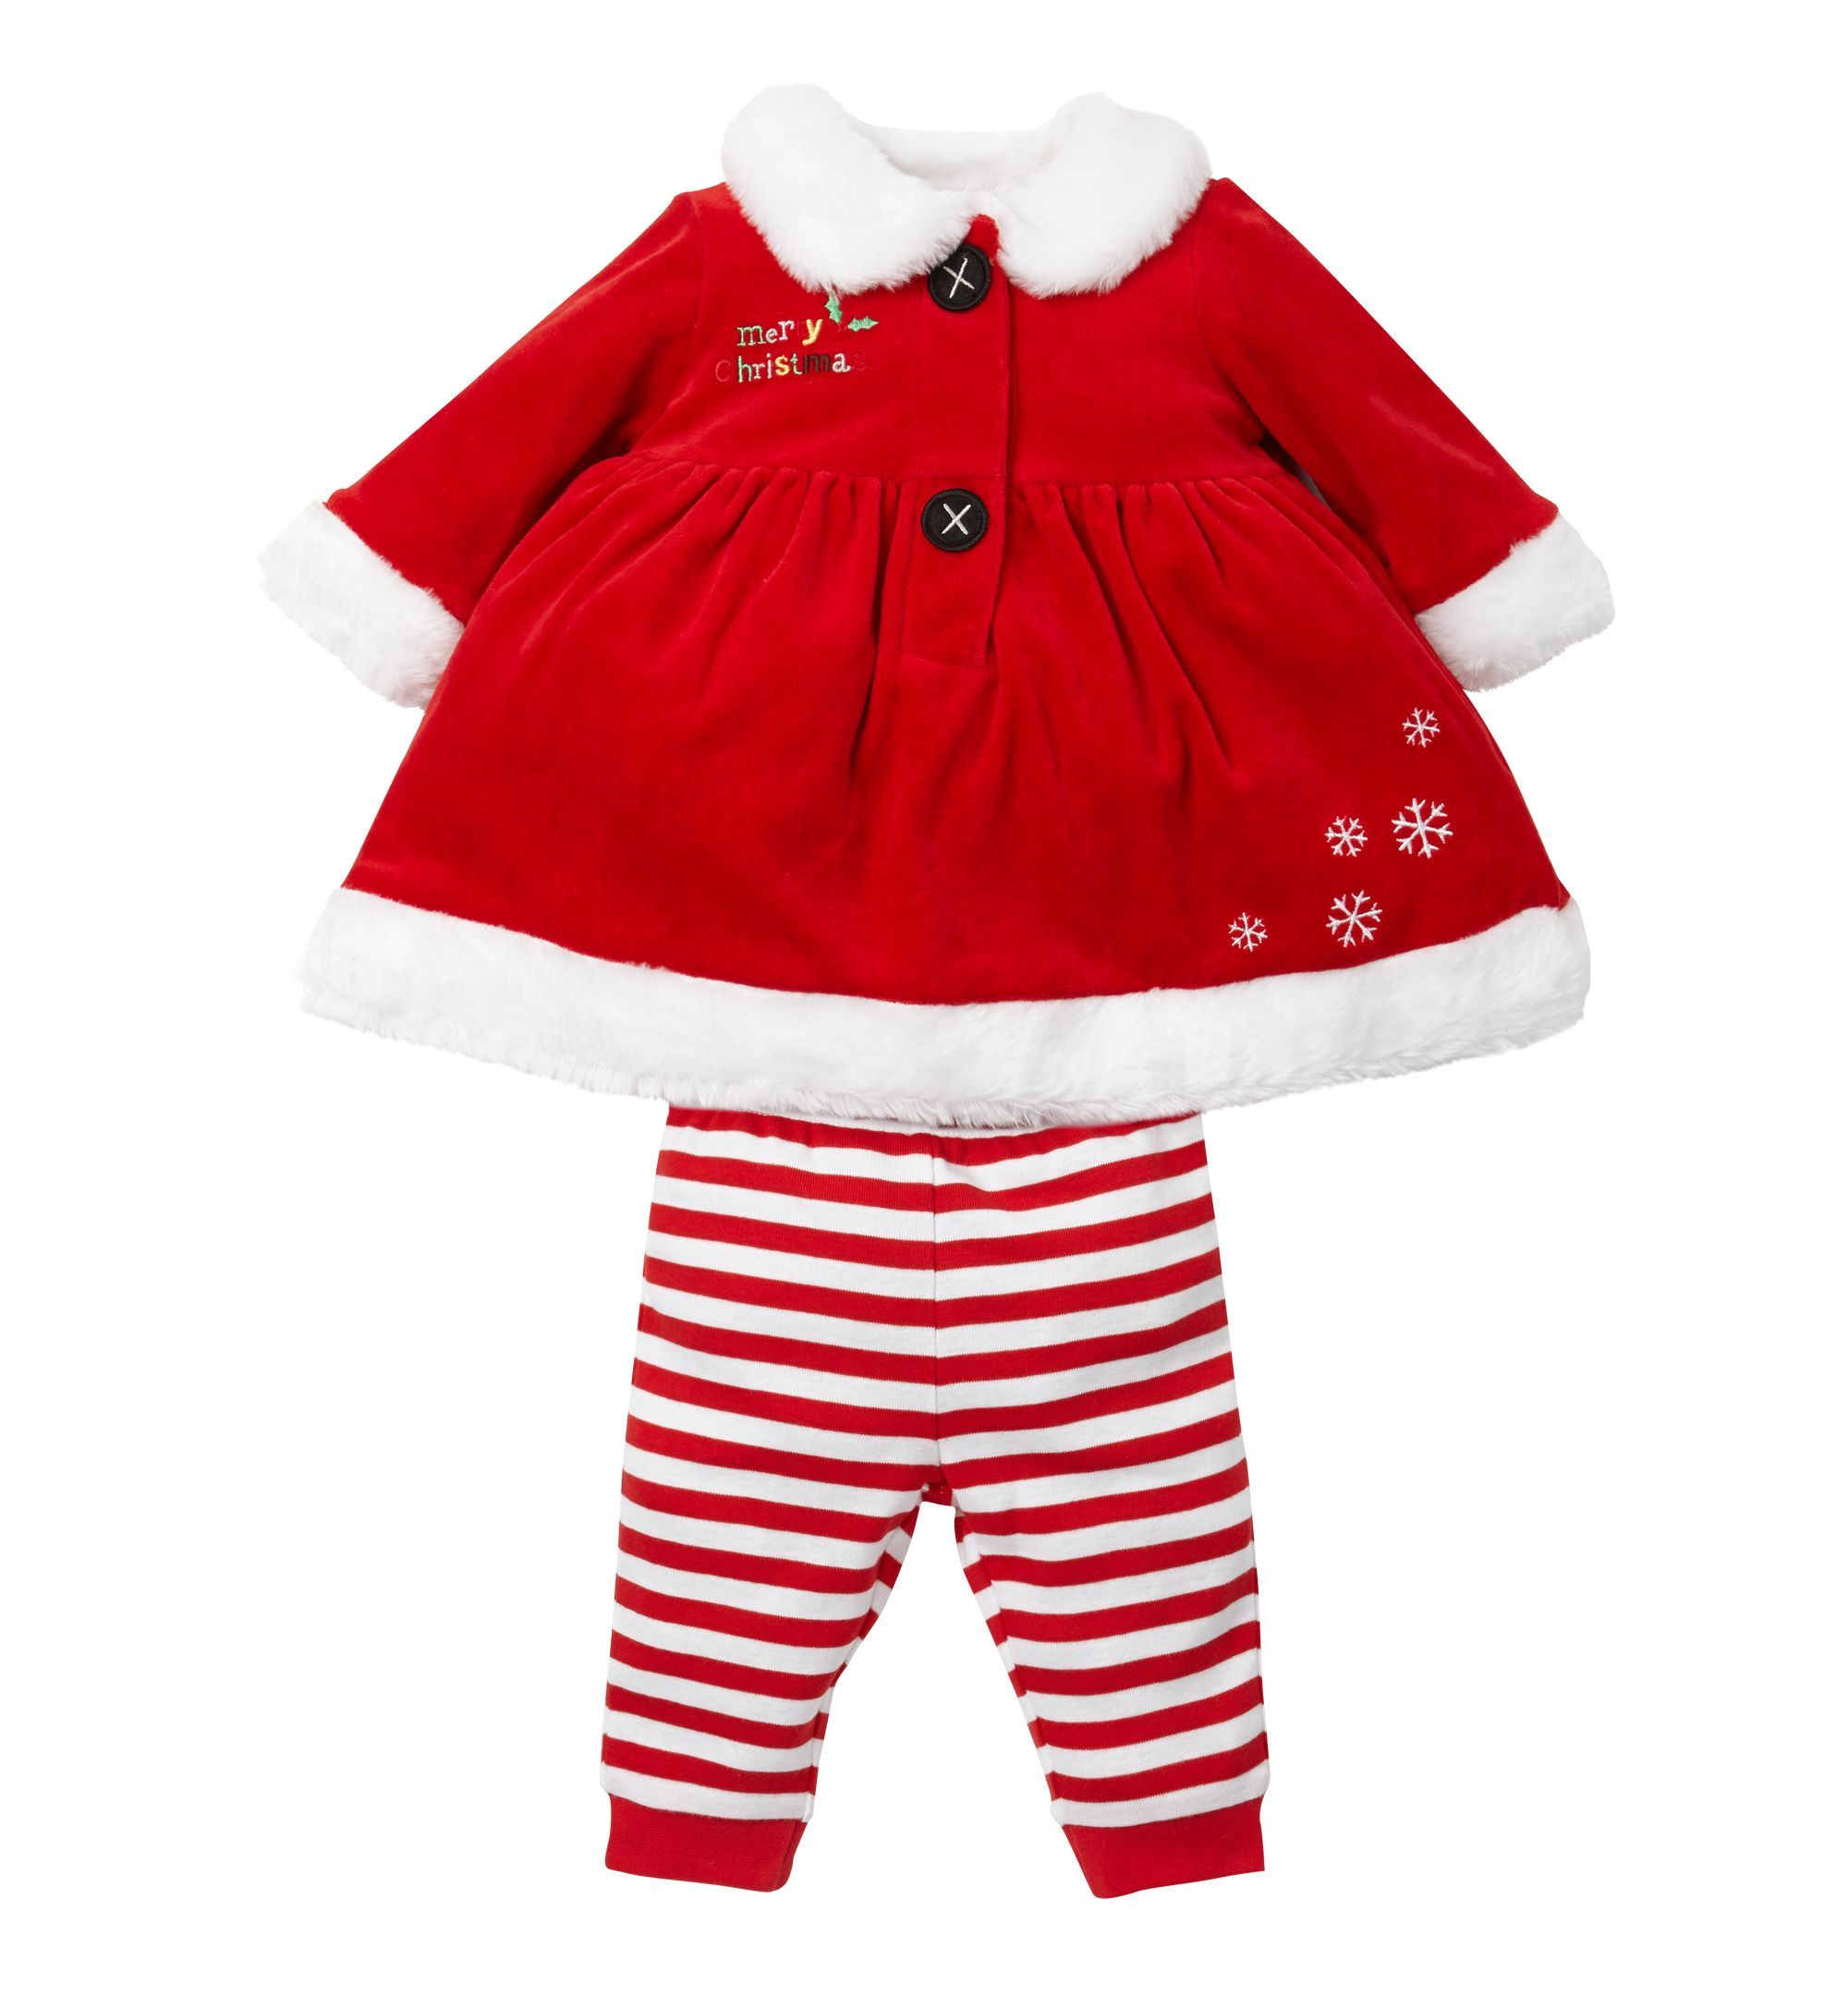 Mrs Santa Dress Up Outfit Baby world Pinterest